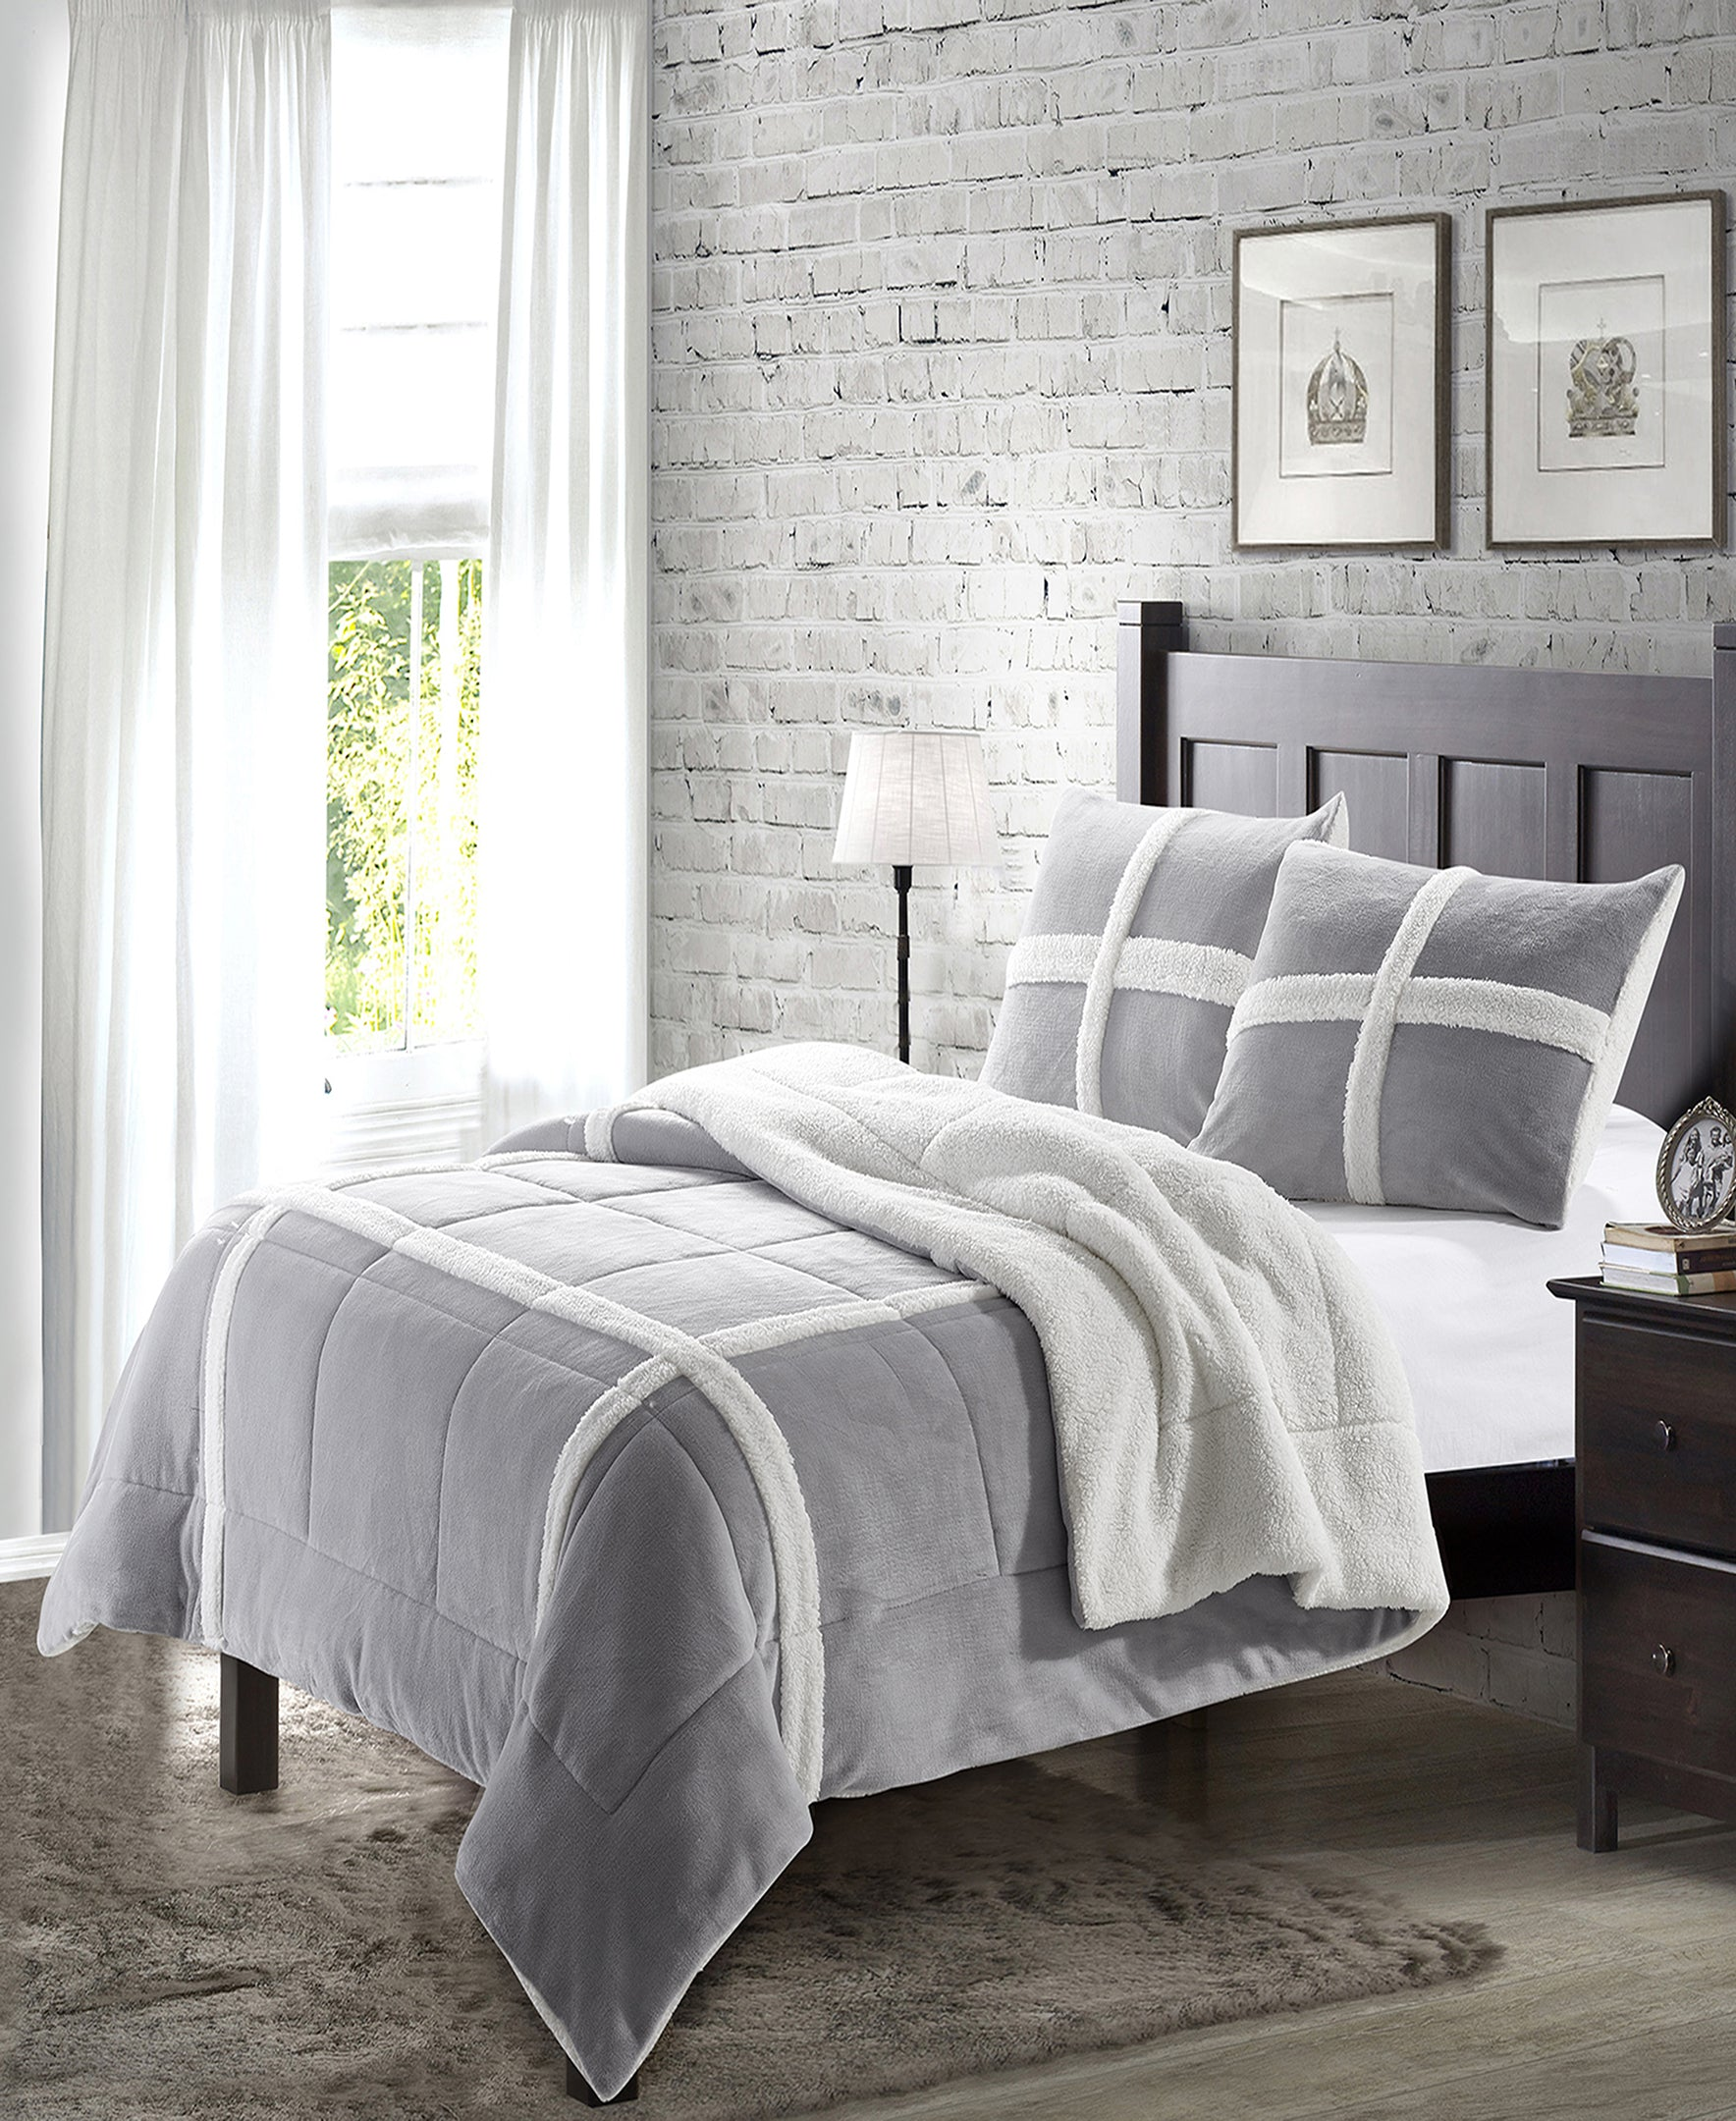 """Simple Elegance by Ben&Jonah 3 Piece Queen Size Flannel Blanket Set with Sherpa Backing (90"""" x 90"""") - Grey"""